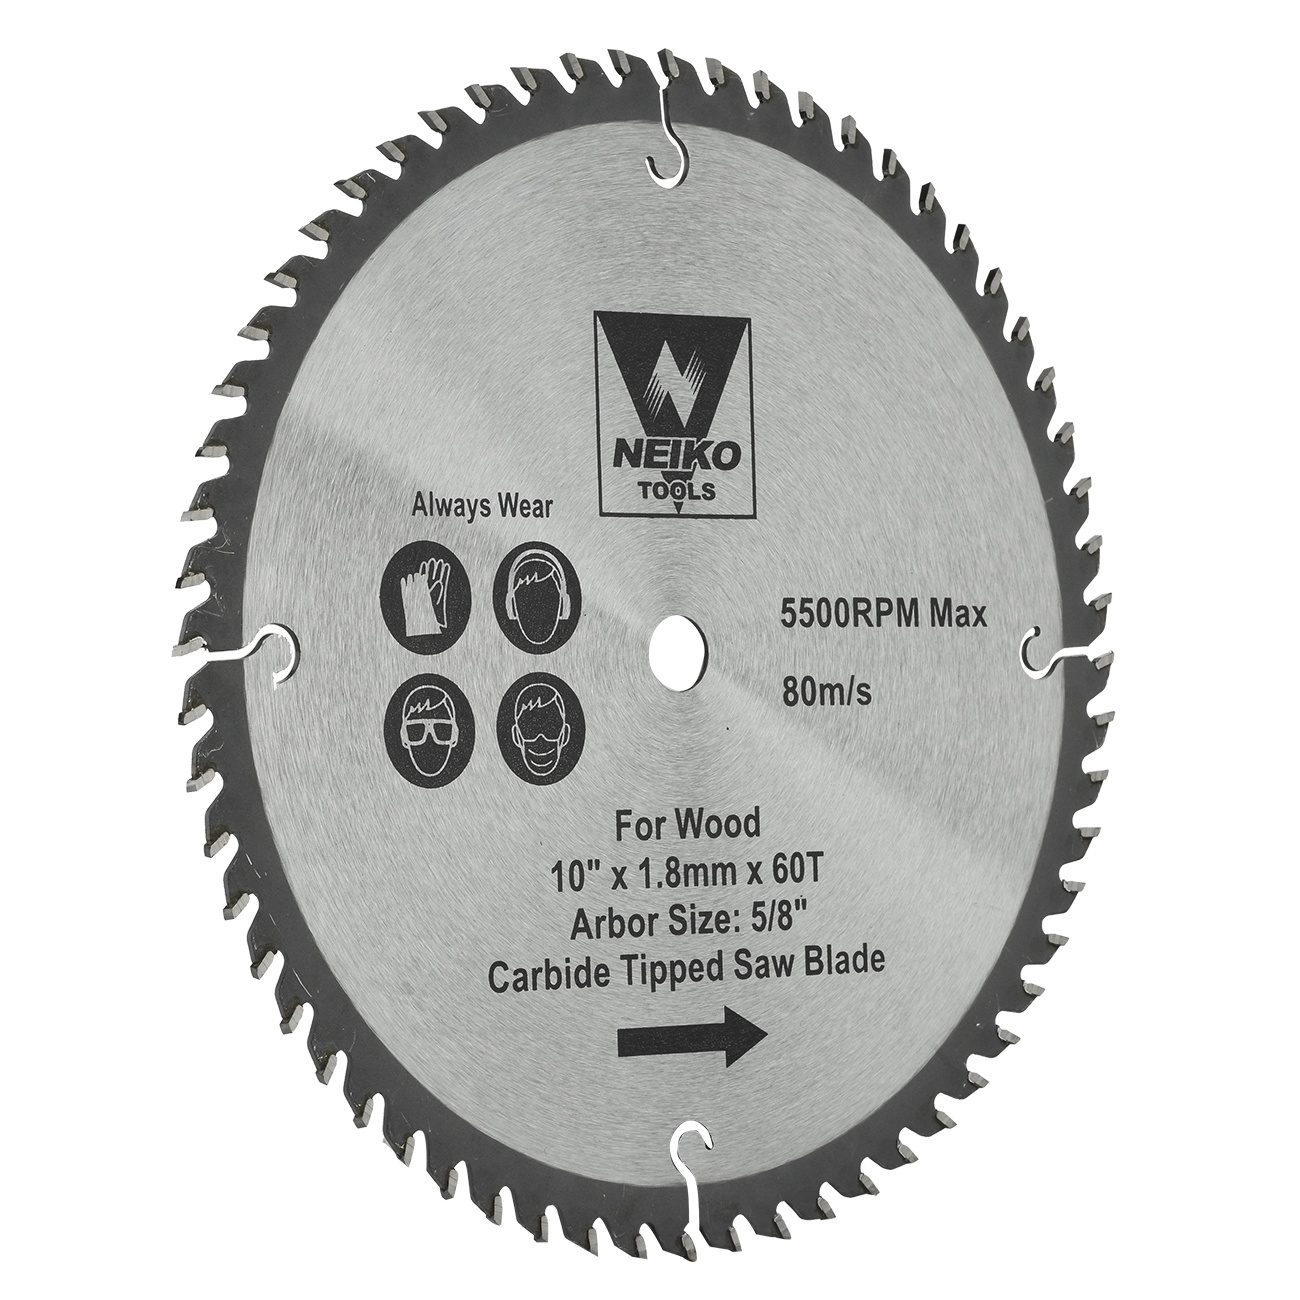 Table Saw Blades For Wood Carbide Tipped 10 Inch X 60 Teeth Ebay